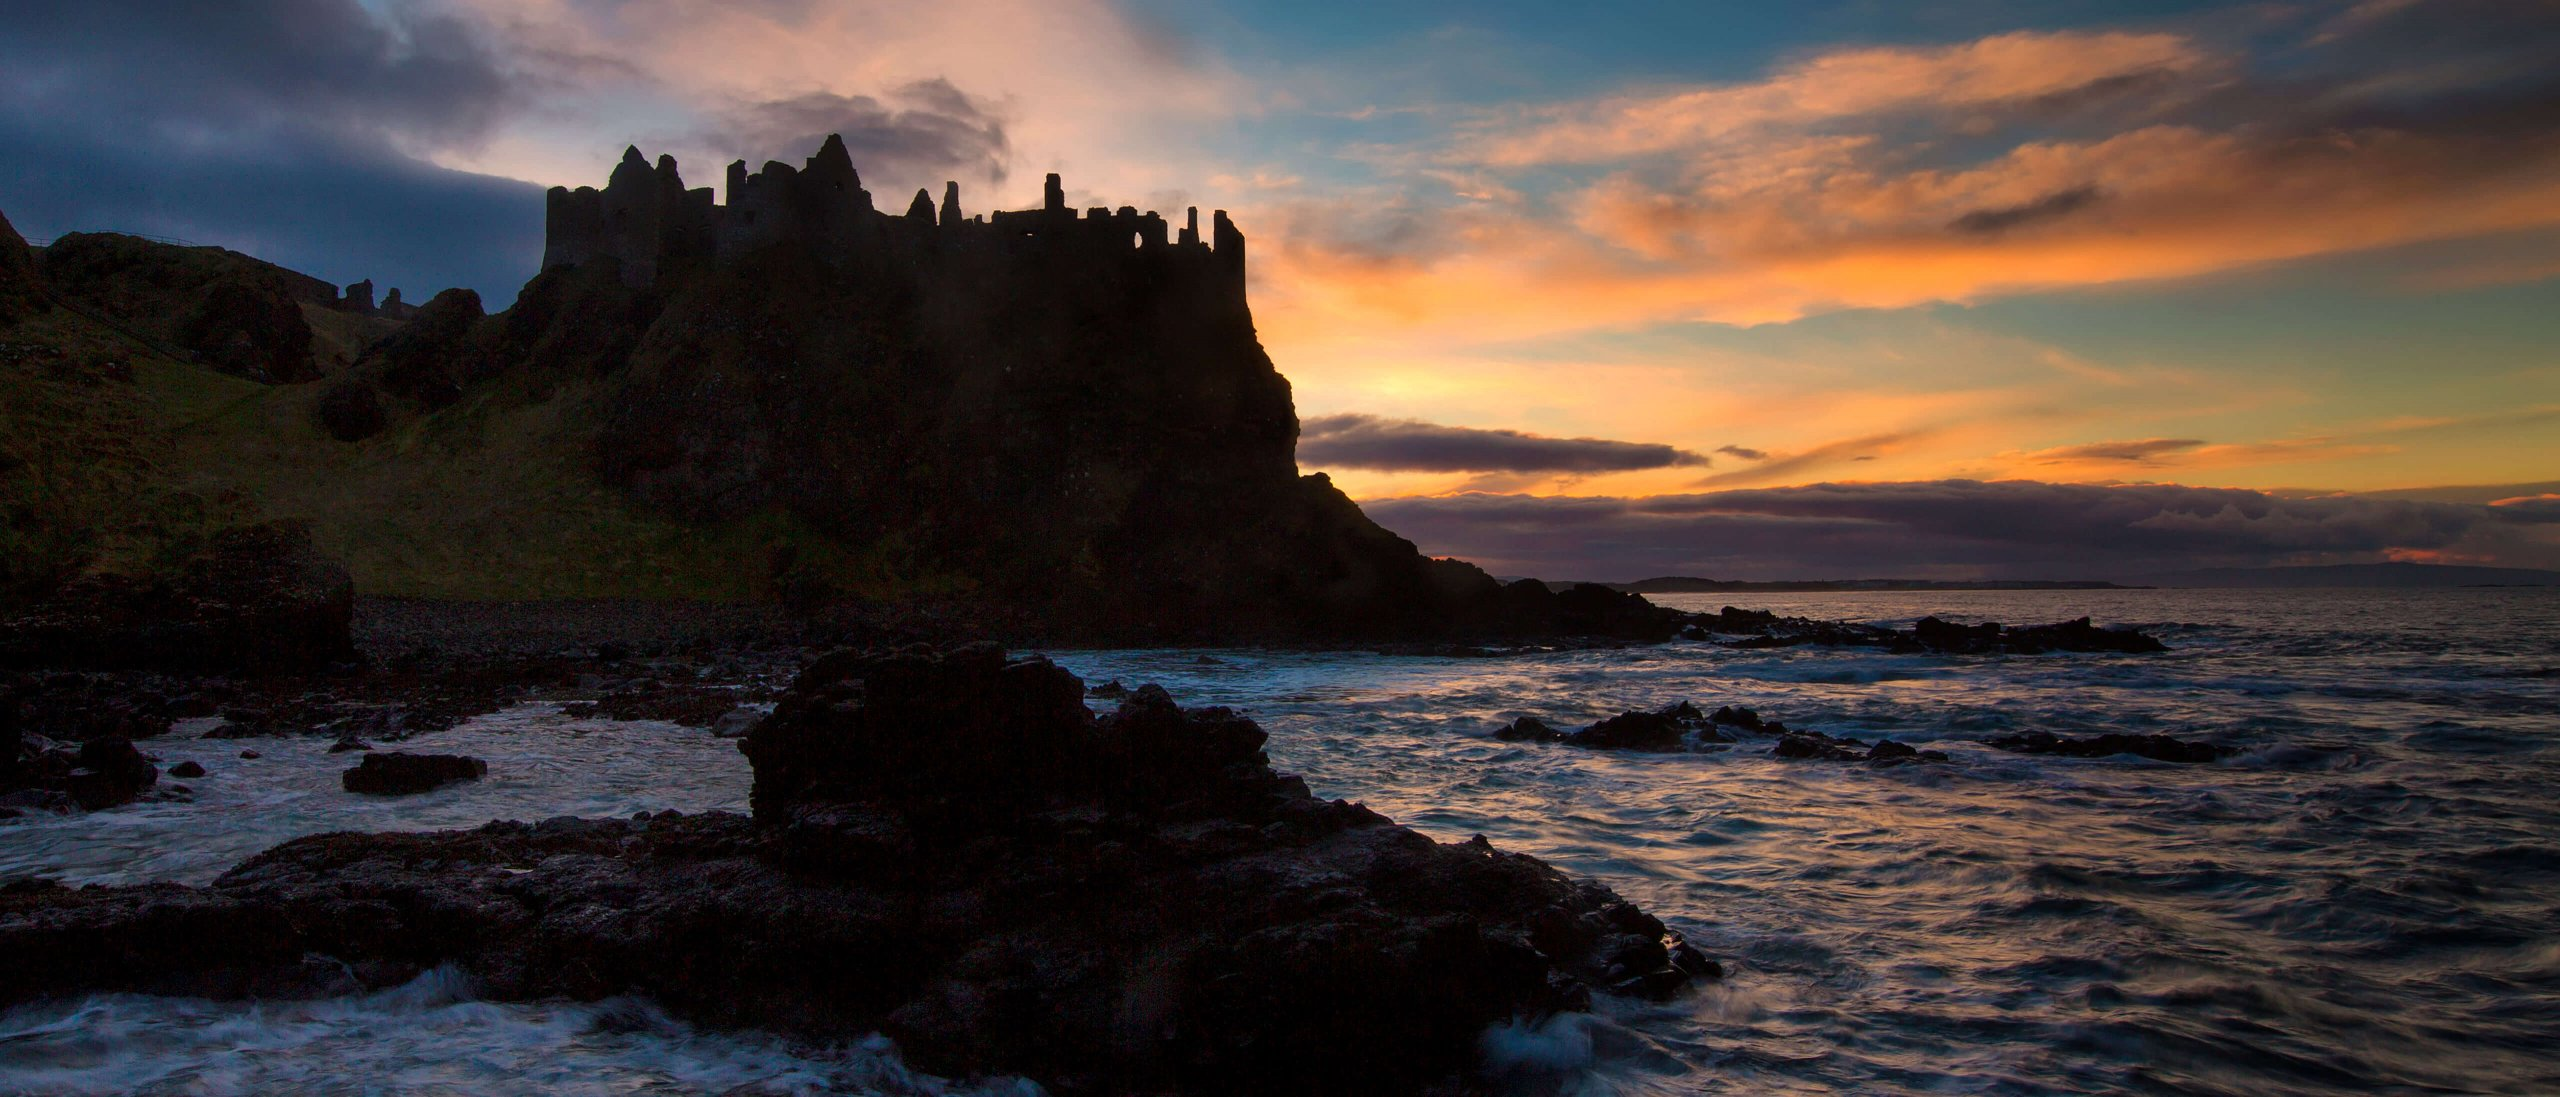 Dunluce Castle on Northern Ireland's Causeway Coast silhouetted against the setting sun with dramatic colours in the sky and ocean in the foreground